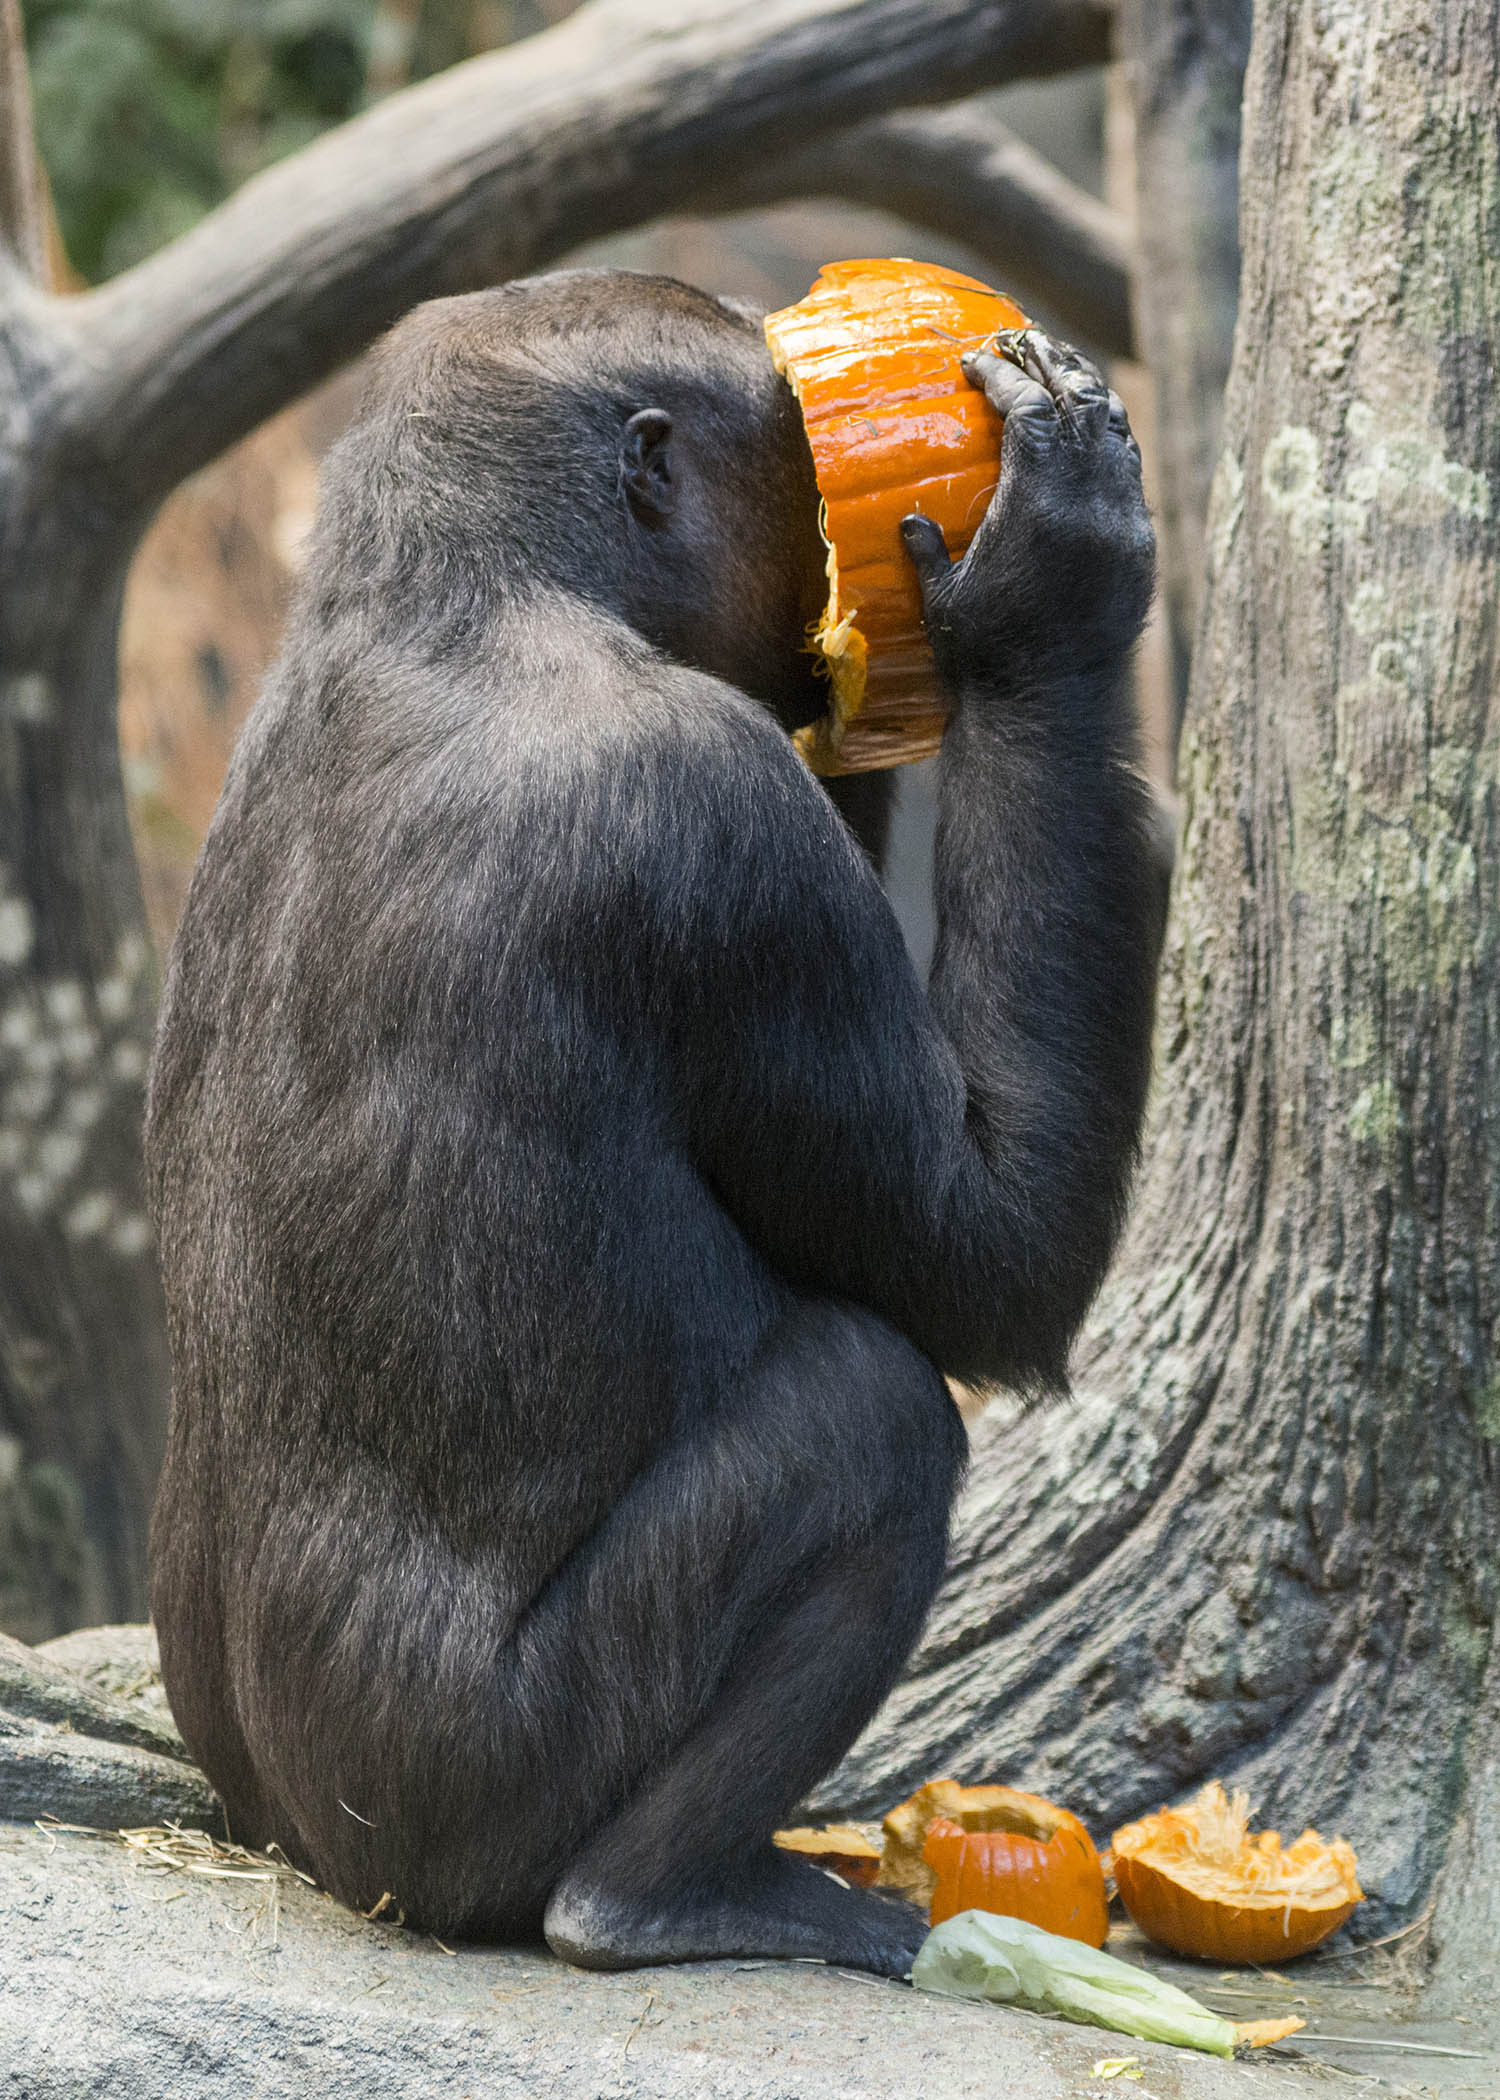 "<div class=""meta image-caption""><div class=""origin-logo origin-image wls""><span>WLS</span></div><span class=""caption-text"">Kamba, a western lowland gorilla at Brookfield Zoo, seems to be thoroughly enjoying the pumpkin that she and the other members of the gorilla family received as part of the zoo's (Kelly Tone/Chicago Zoological Society)</span></div>"